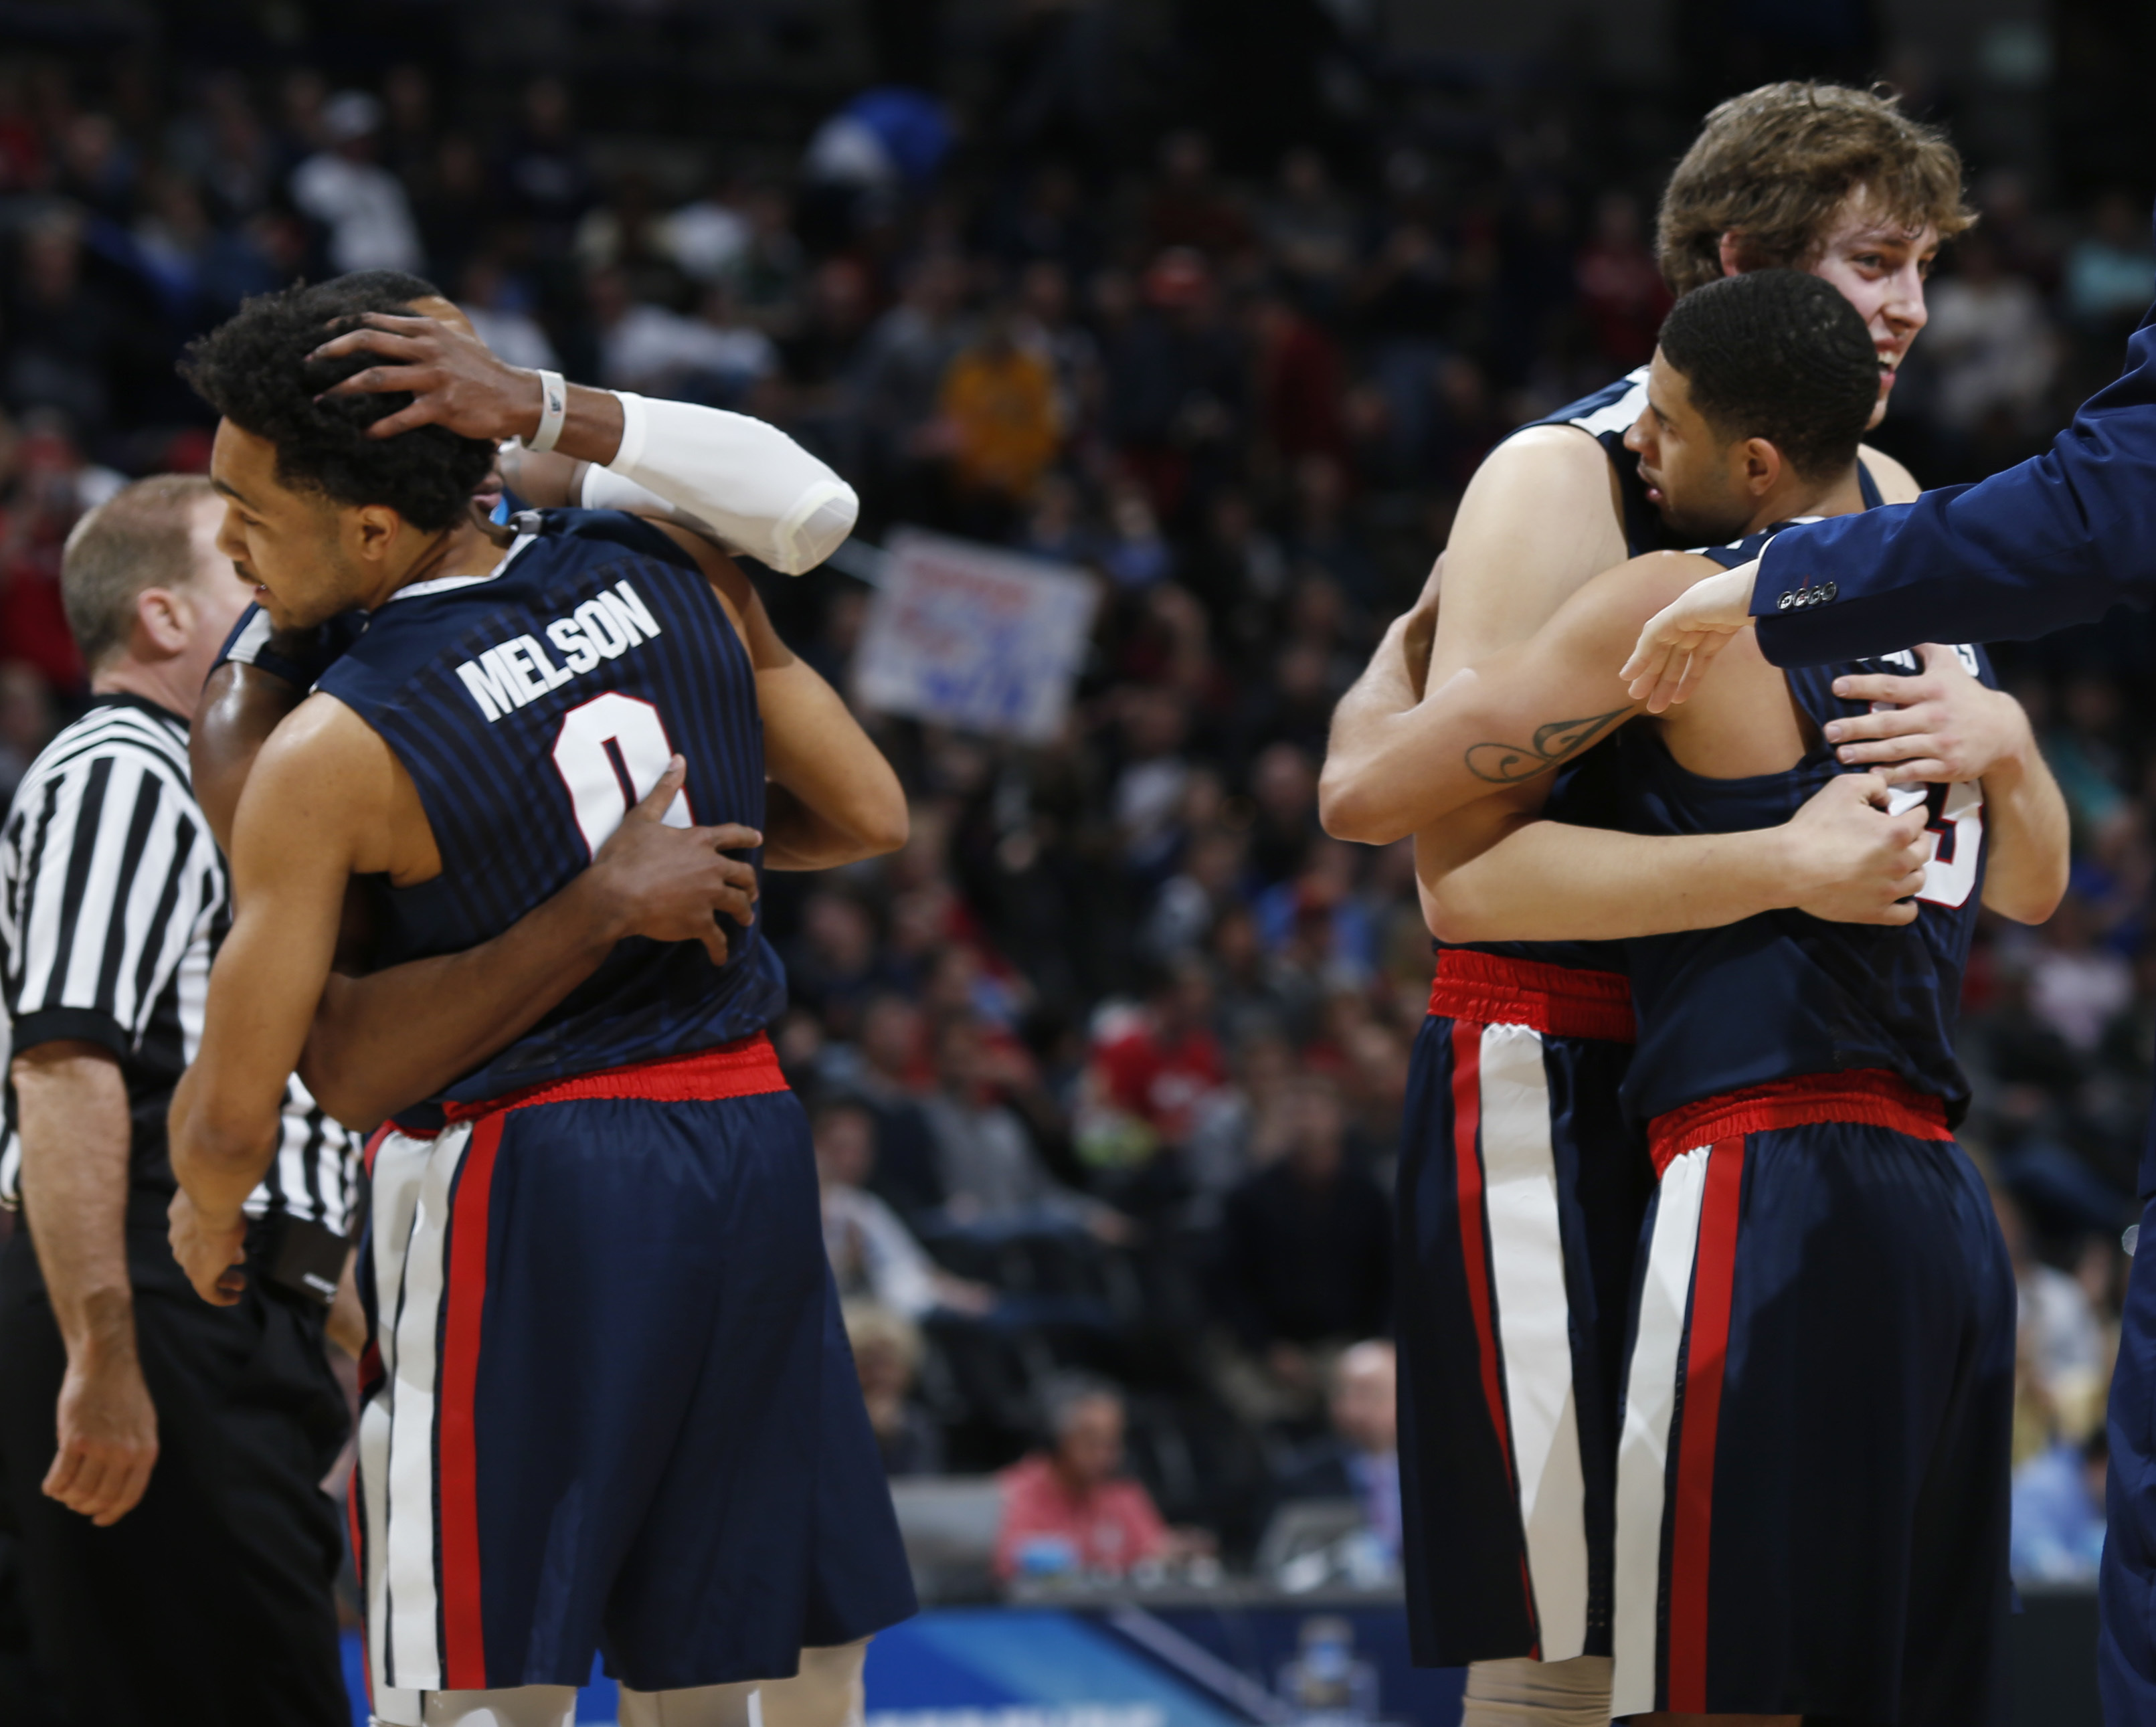 Gonzaga guard Silas Melson, front left, hugs guard Eric McClellan as guard Josh Perkins, front right, hugs forward Kyle Wiltjer late in the second half of a second-round men's college basketball game against Utah on Saturday, March 19, 2016, in the NCAA T